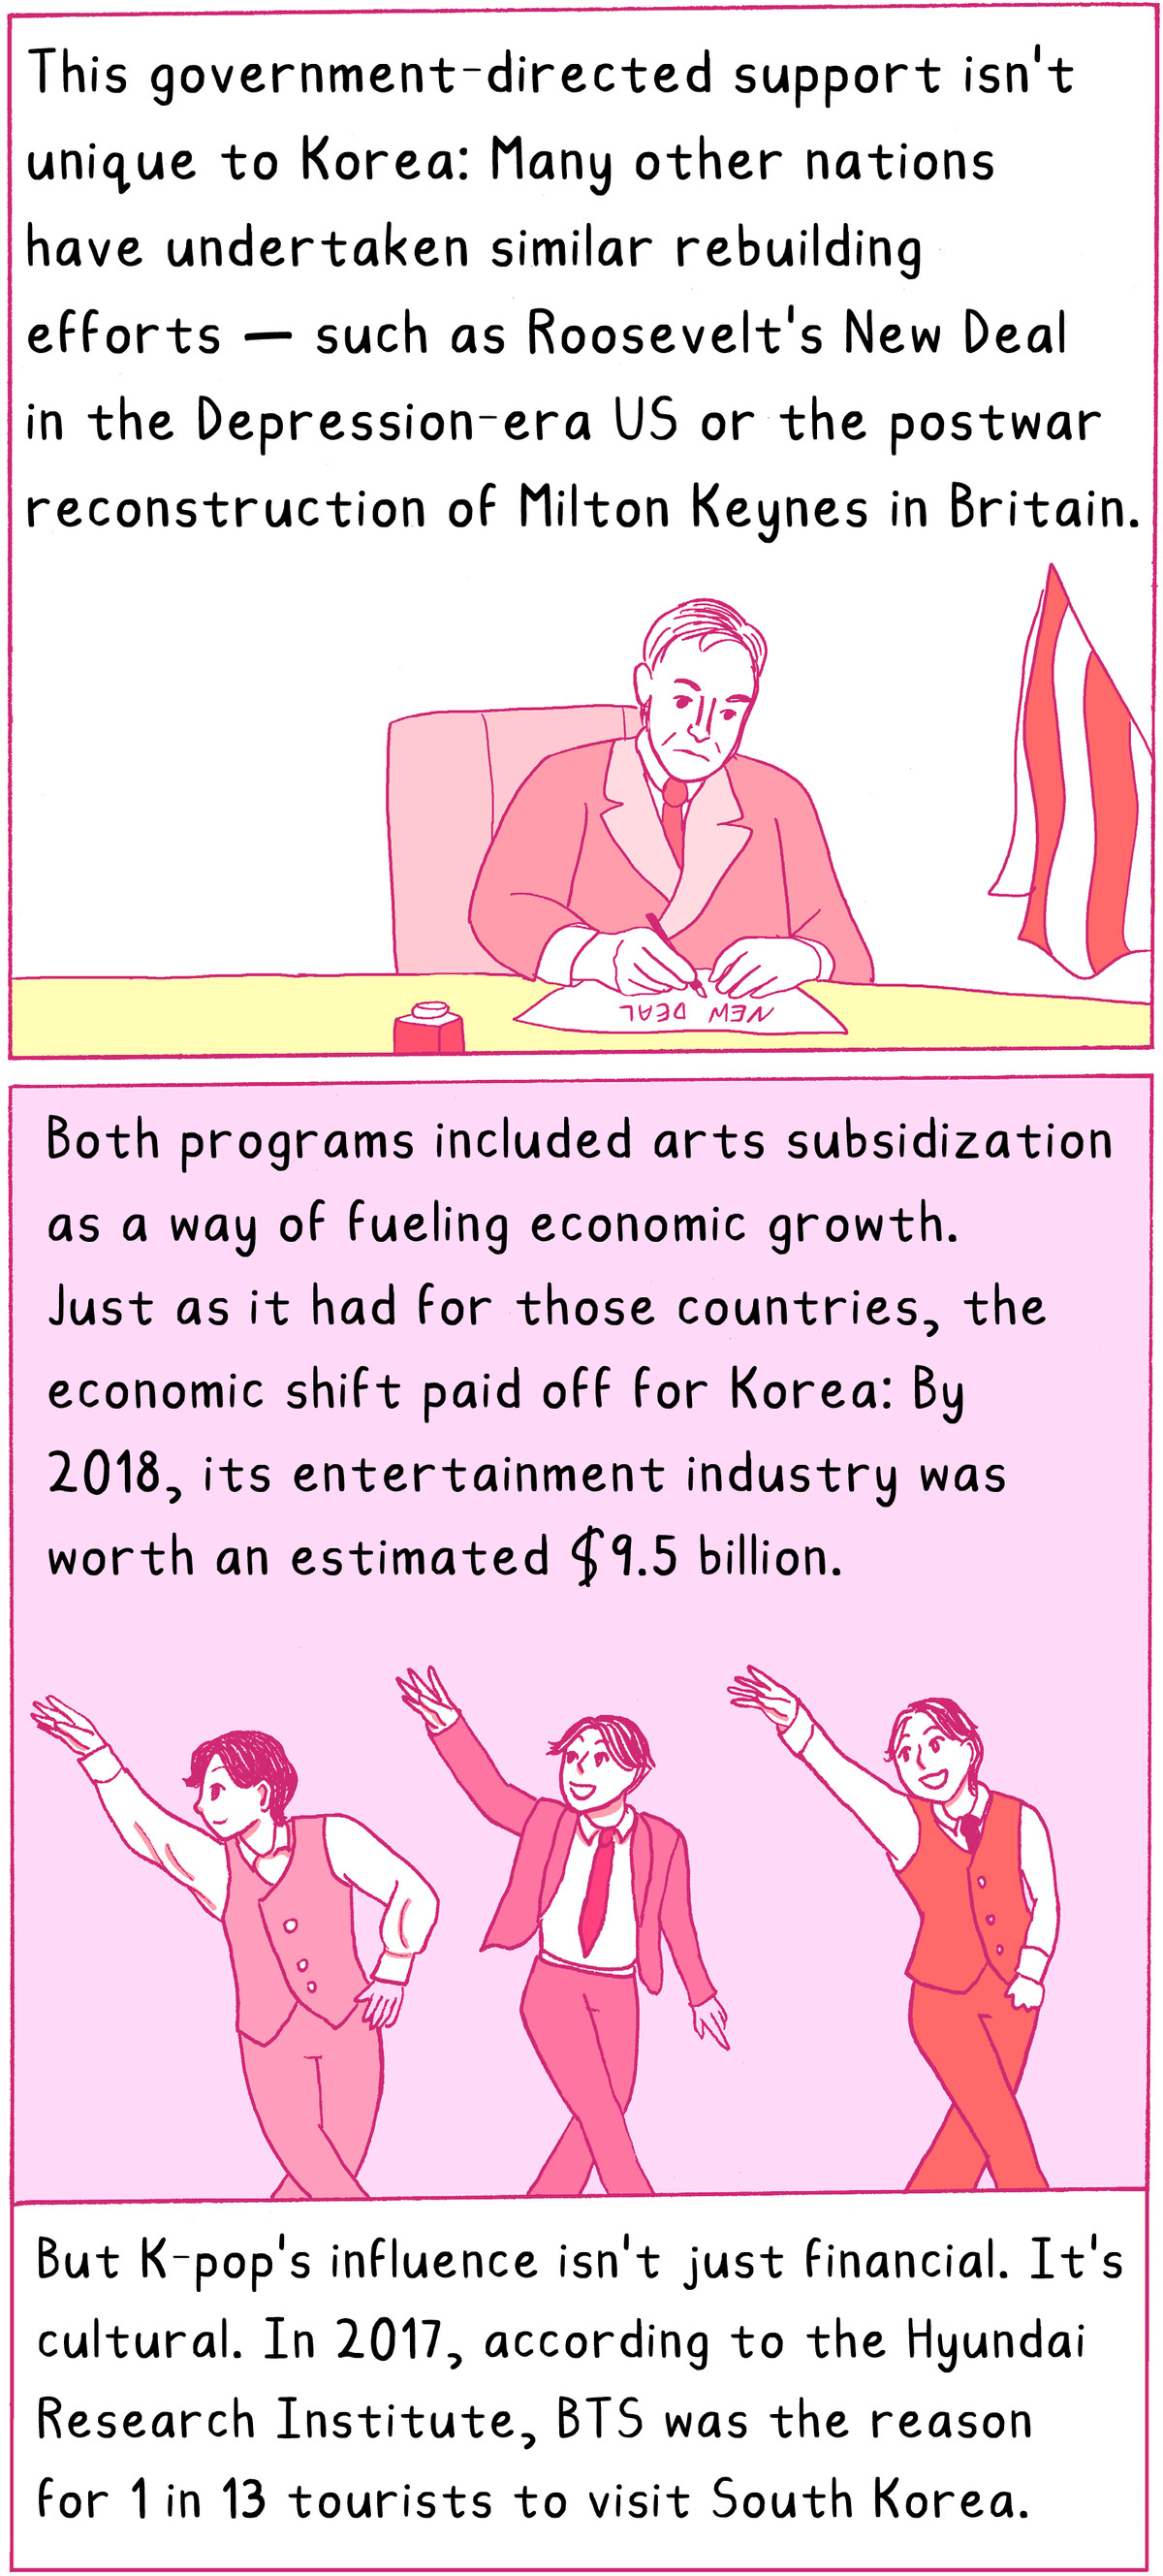 This government-directed support for pop culture isn't unique to Korea: Many other nations have taken a similar approach to rebuilding — like Roosevelt's New Deal in the Depression-era U.S., or Milton Keynes' postwar reconstruction of Britain. Both programs included arts subsidization as a way of fueling economic growth. By 2018, its entertainment industry was worth an estimated $9.5 billion. But K-pop's influence isn't just financial. It's cultural.